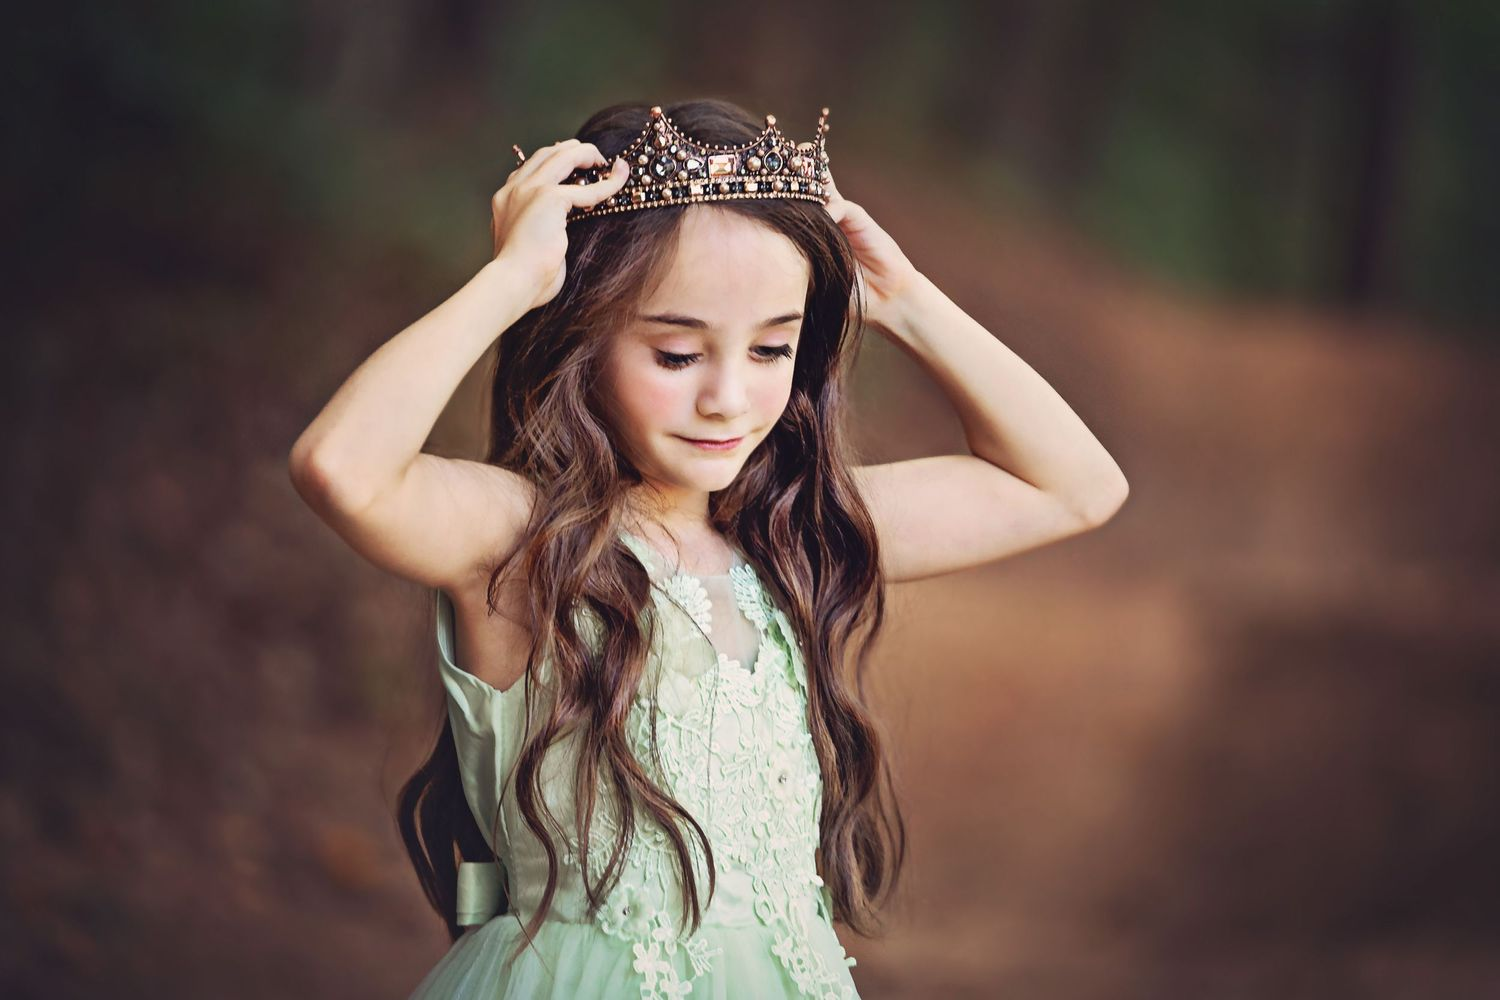 frog princess crown imagination photography mc